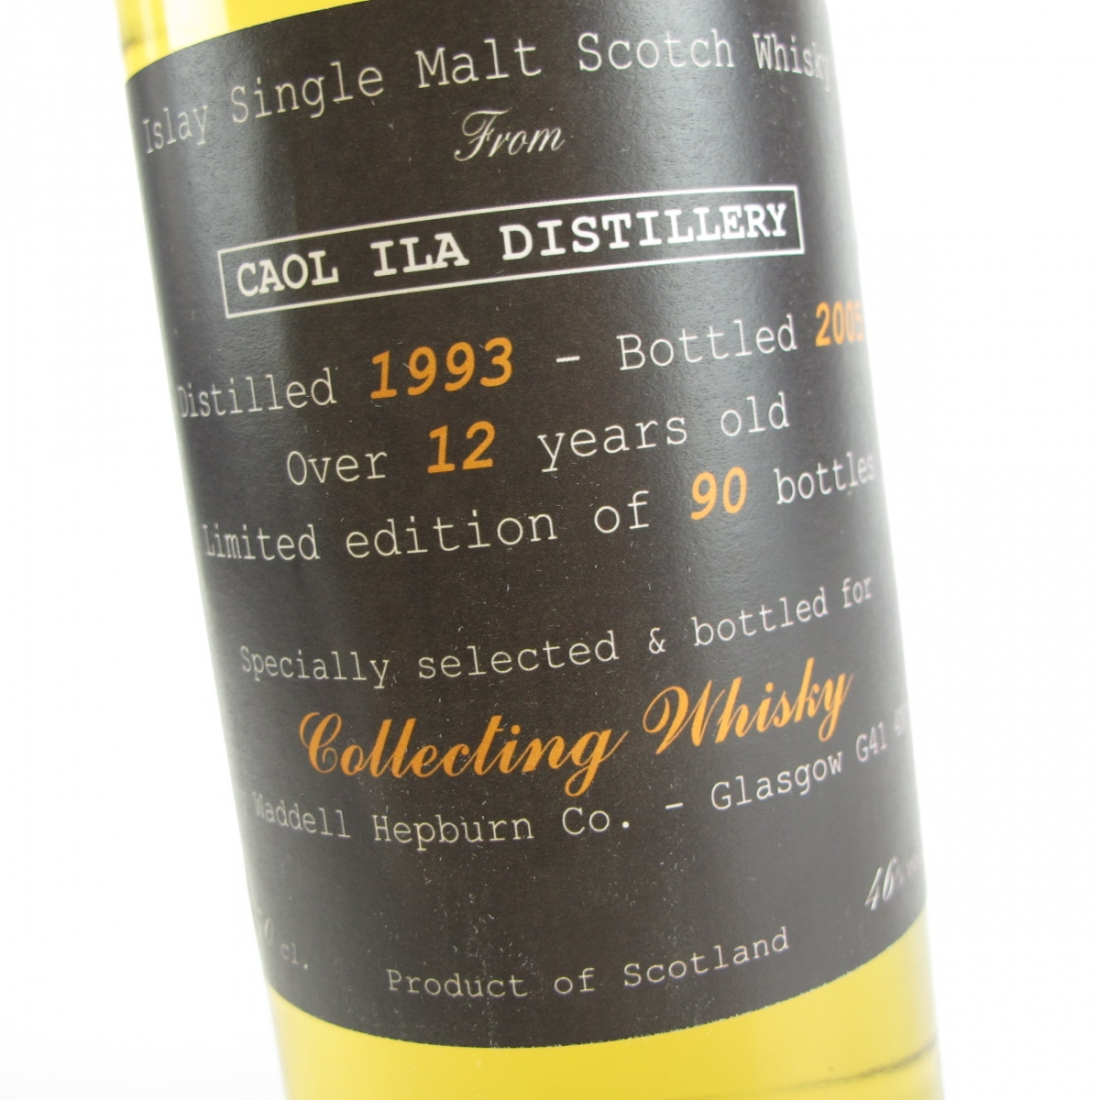 Caol Ila 1993 Waddell Hepburn Co 12 Year Old / Collecting Whisky